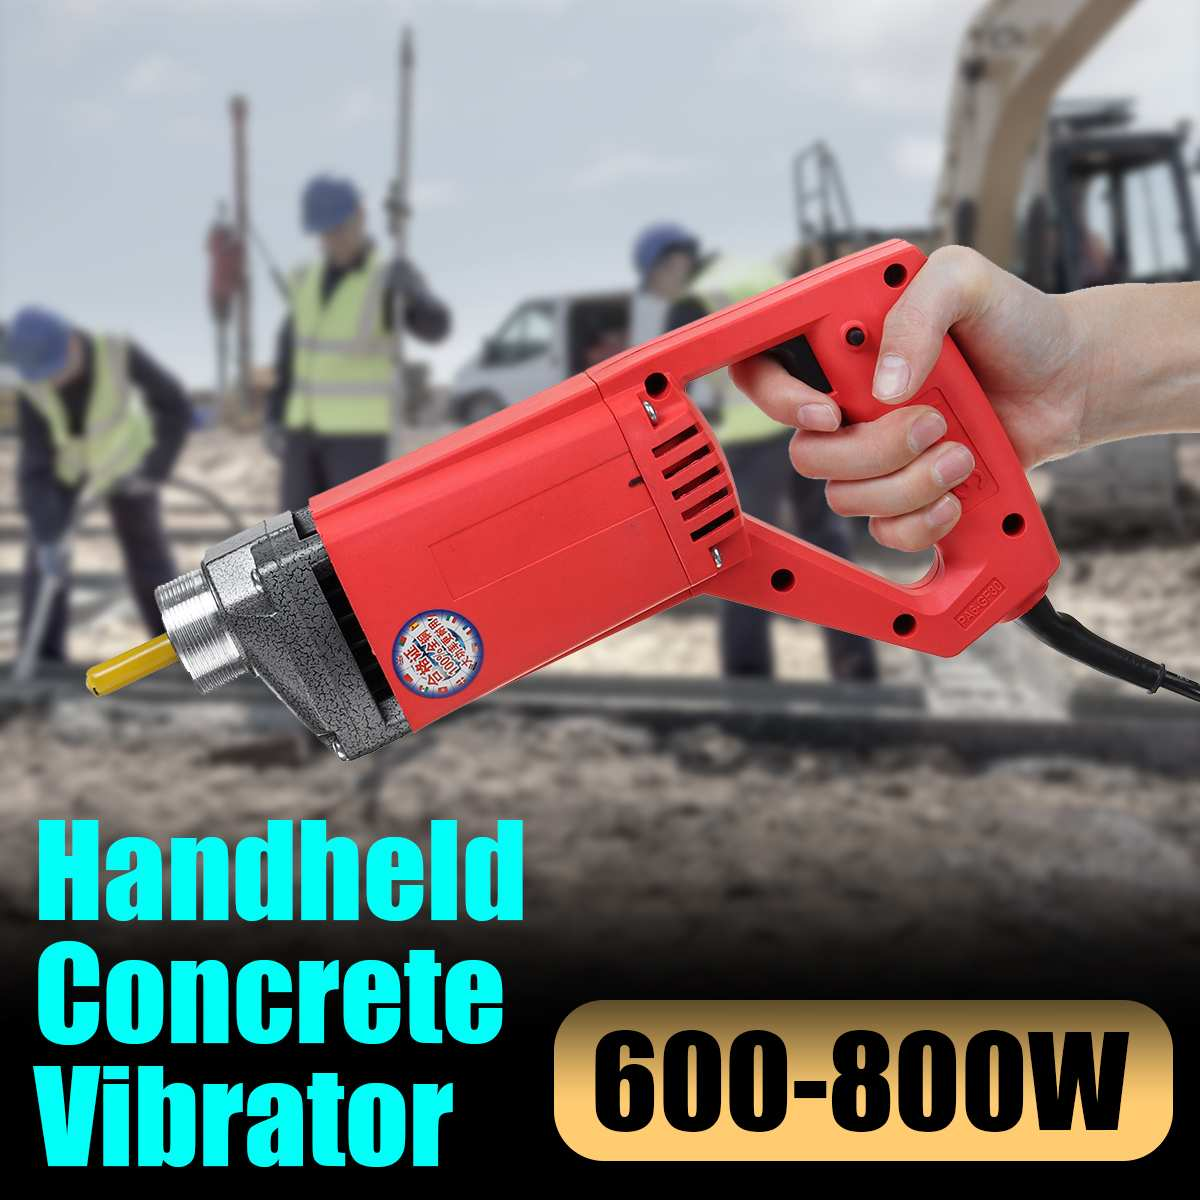 600-800W Handheld Electrical Concrete Vibrator With Motor Construction Tools Power Tool Fit For 1m/1.5m Vibrator BC-35-1